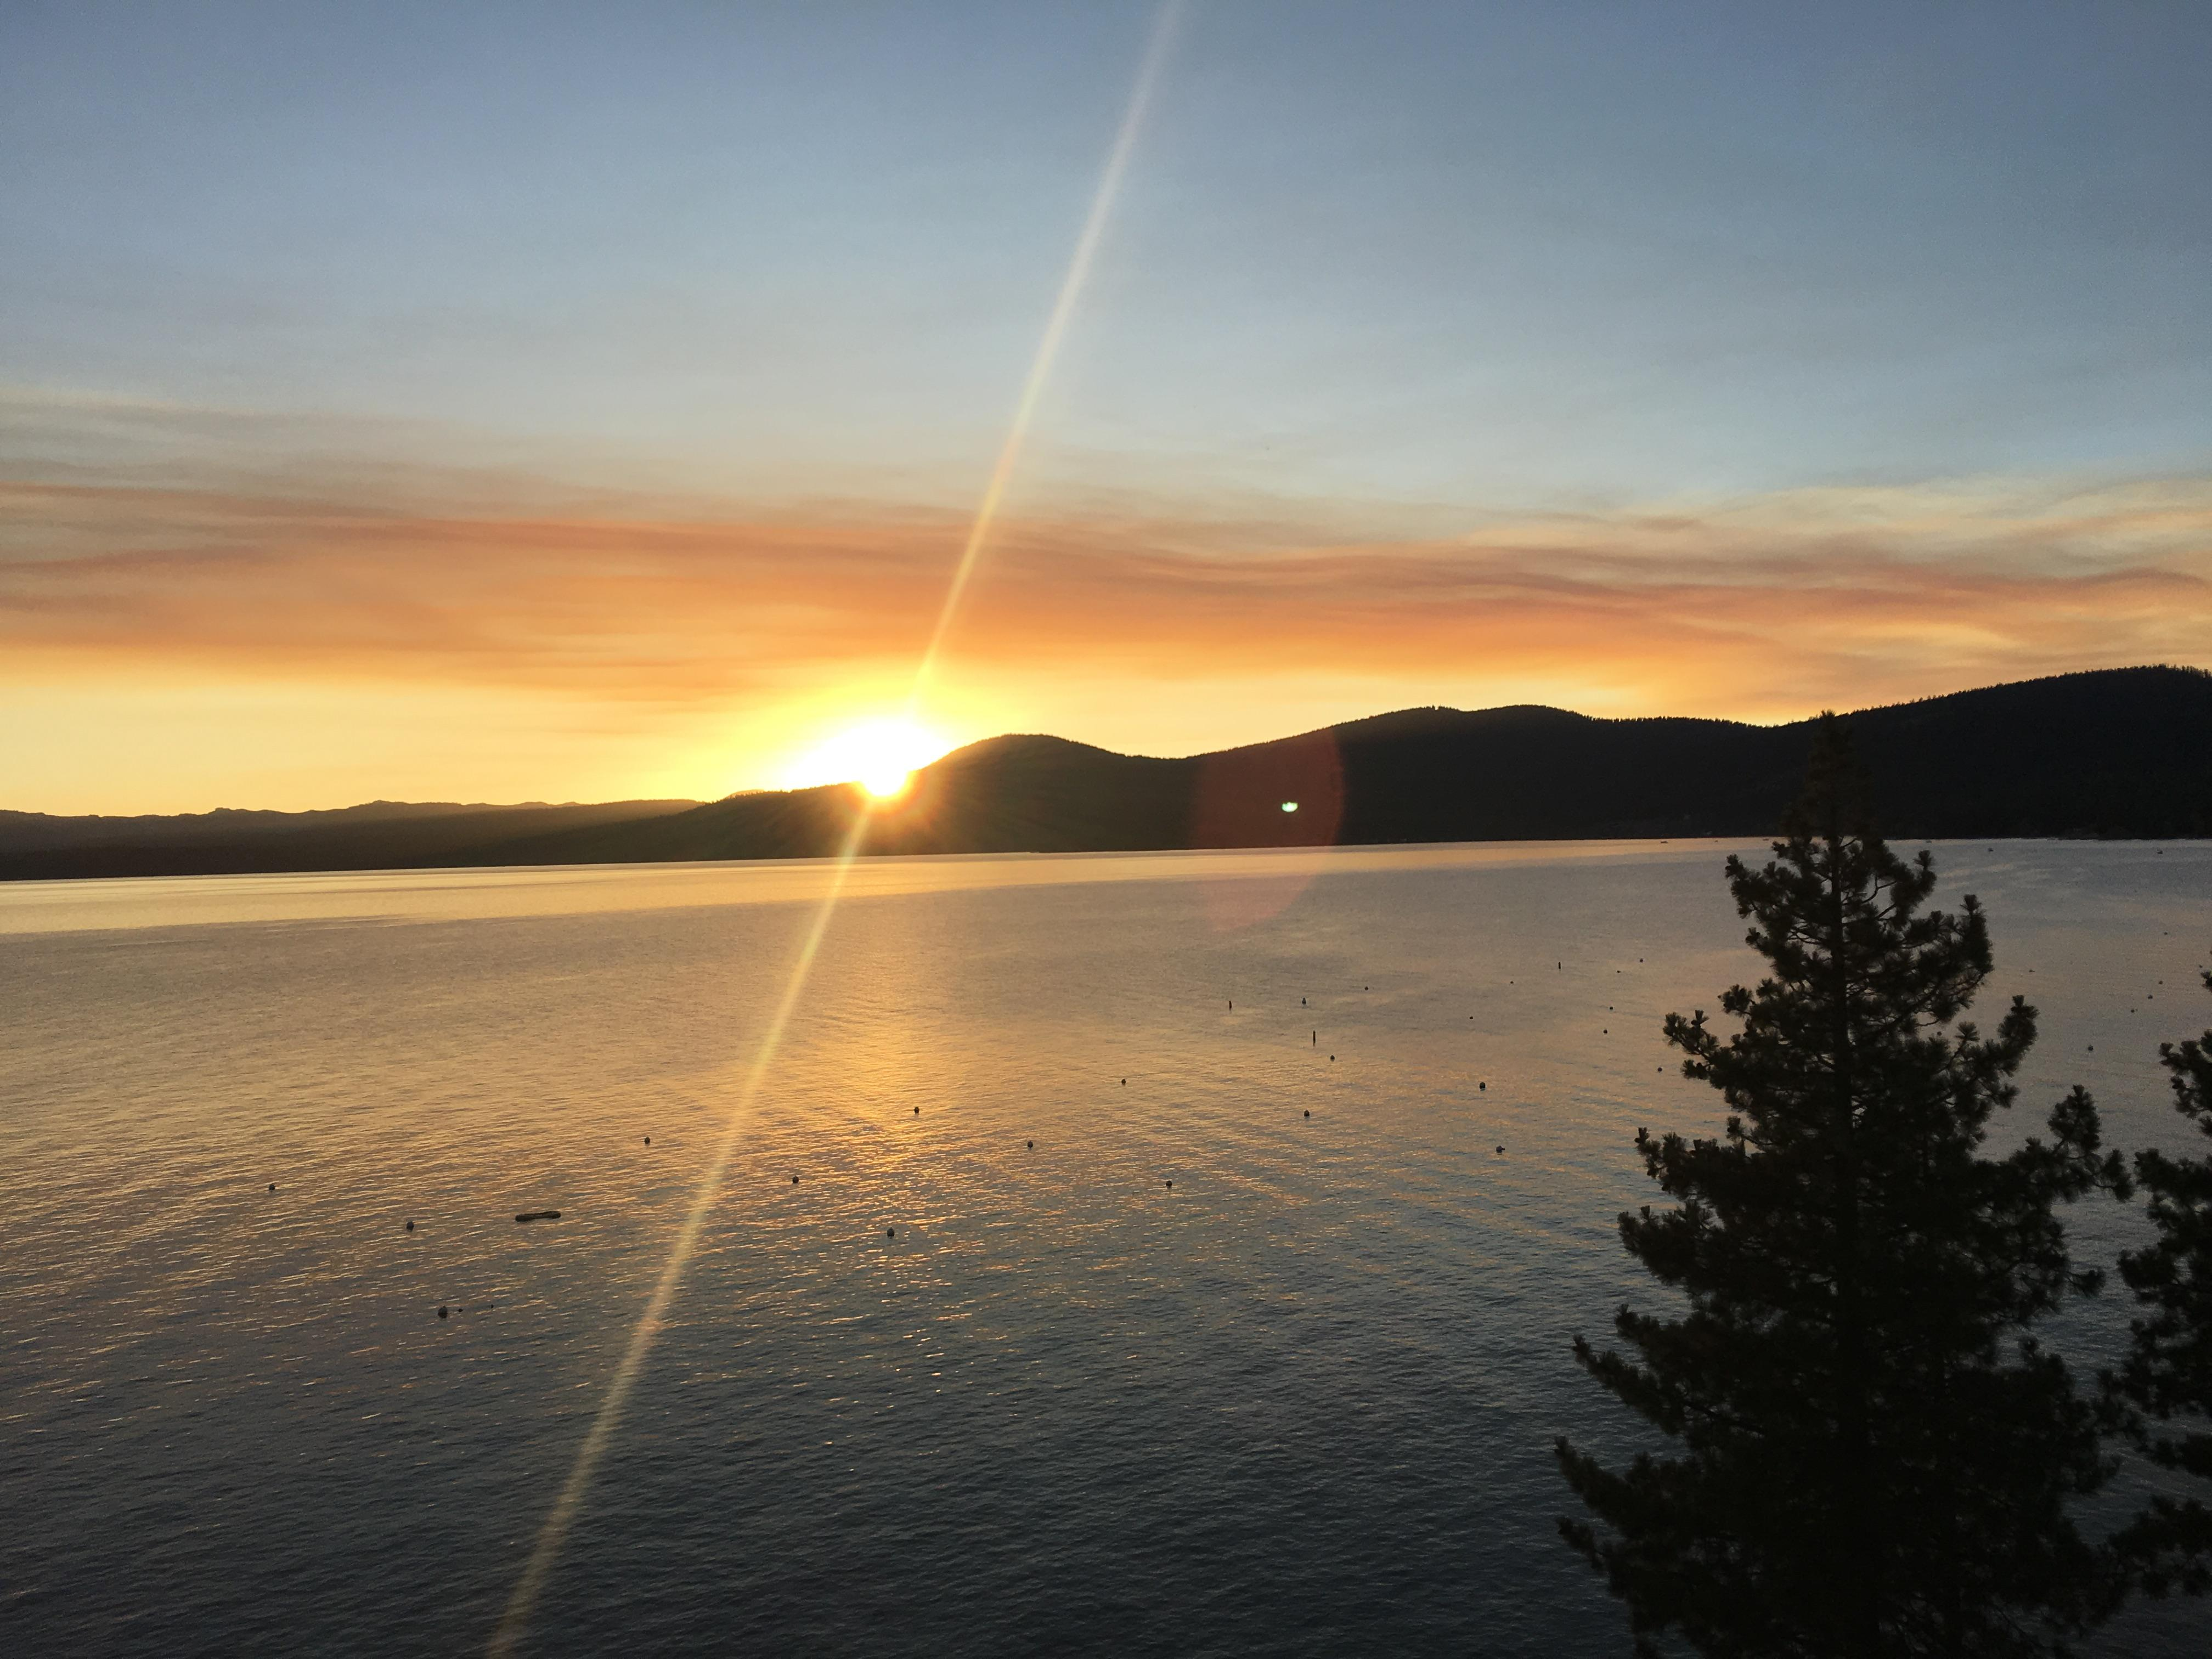 Enjoy stunning sunset views over Lake Tahoe.